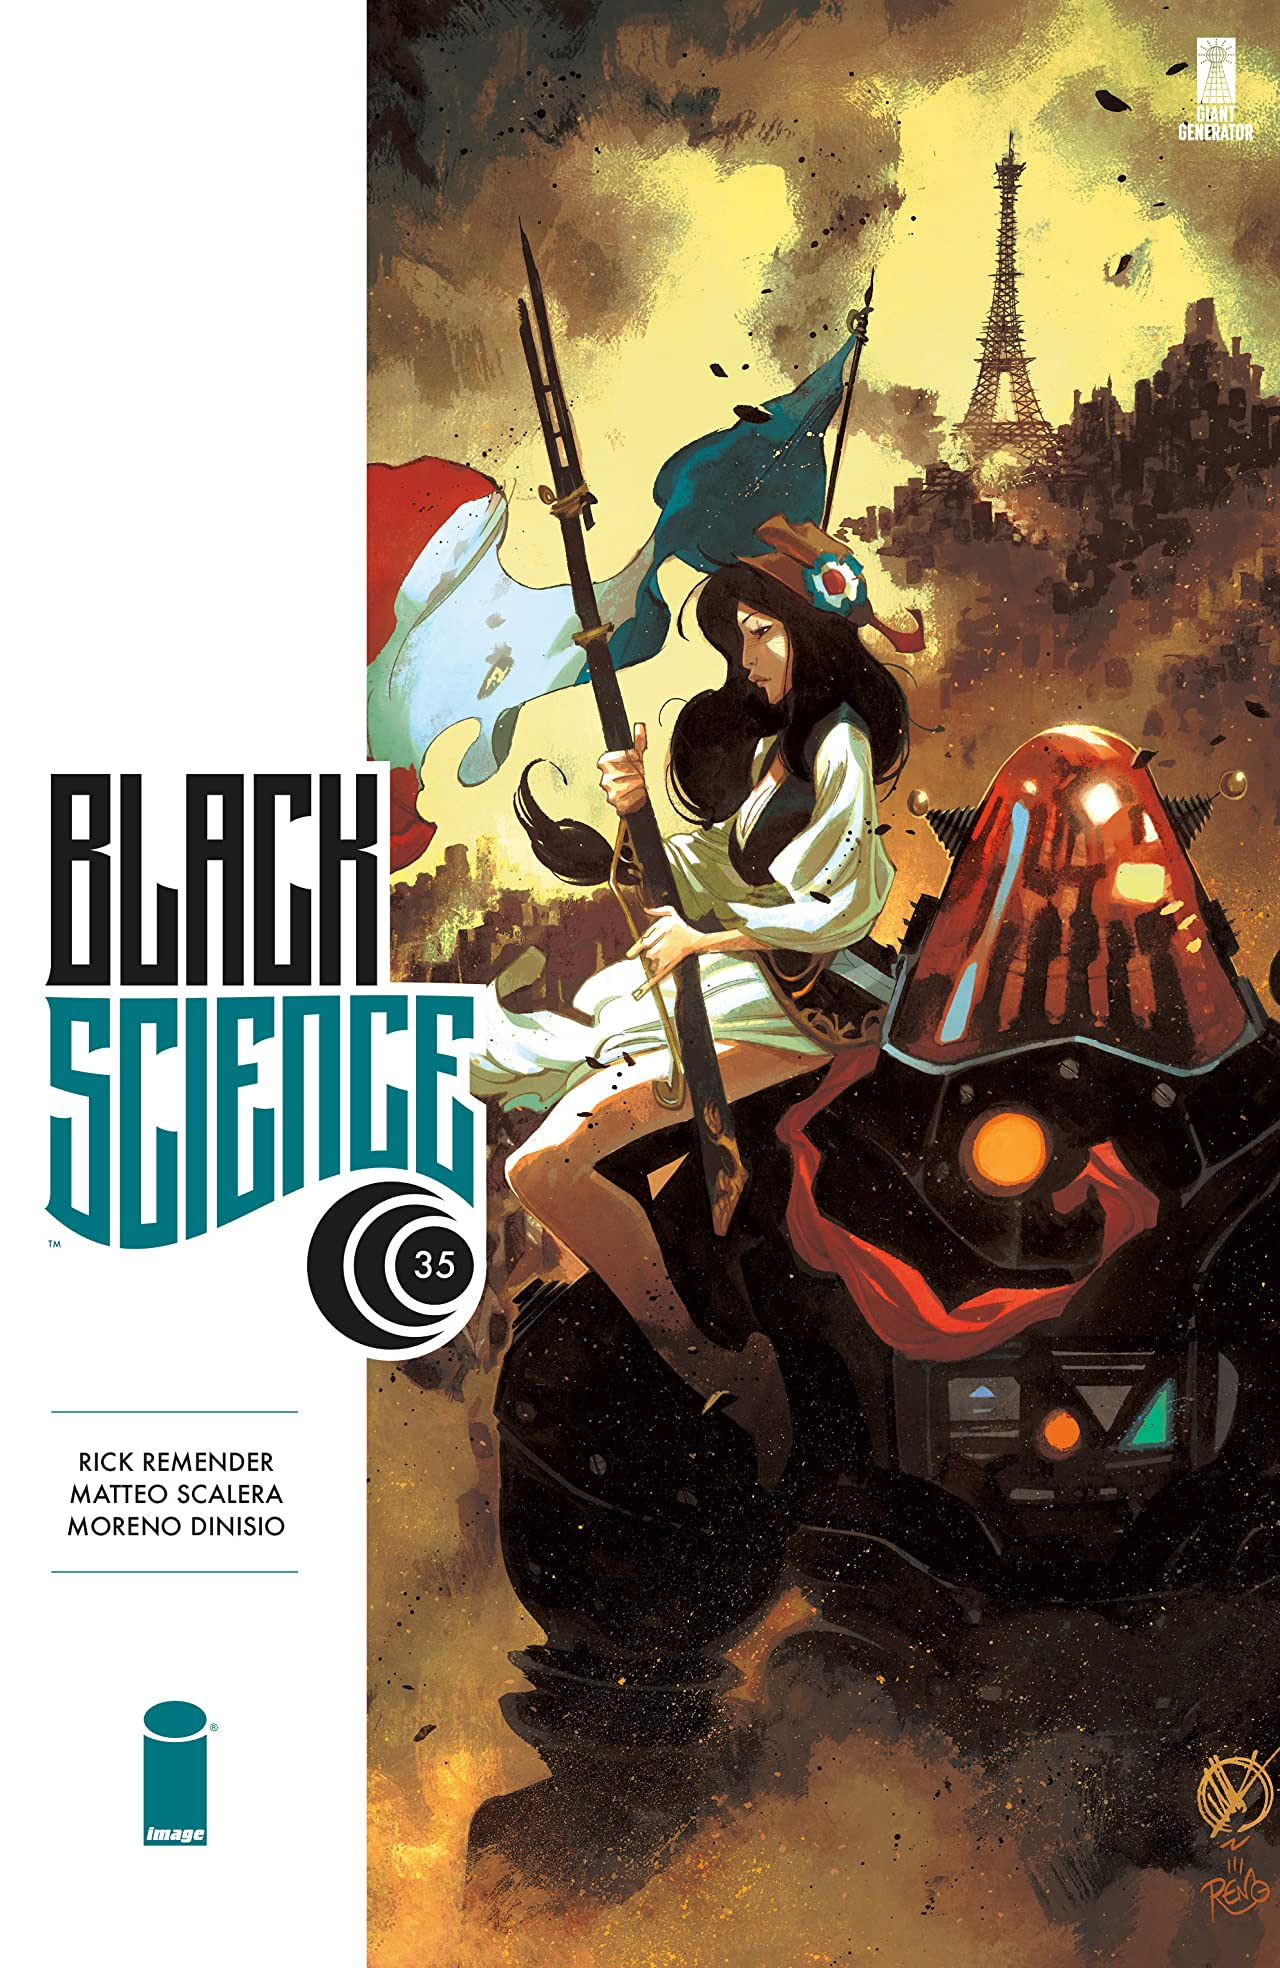 Black Science No.35